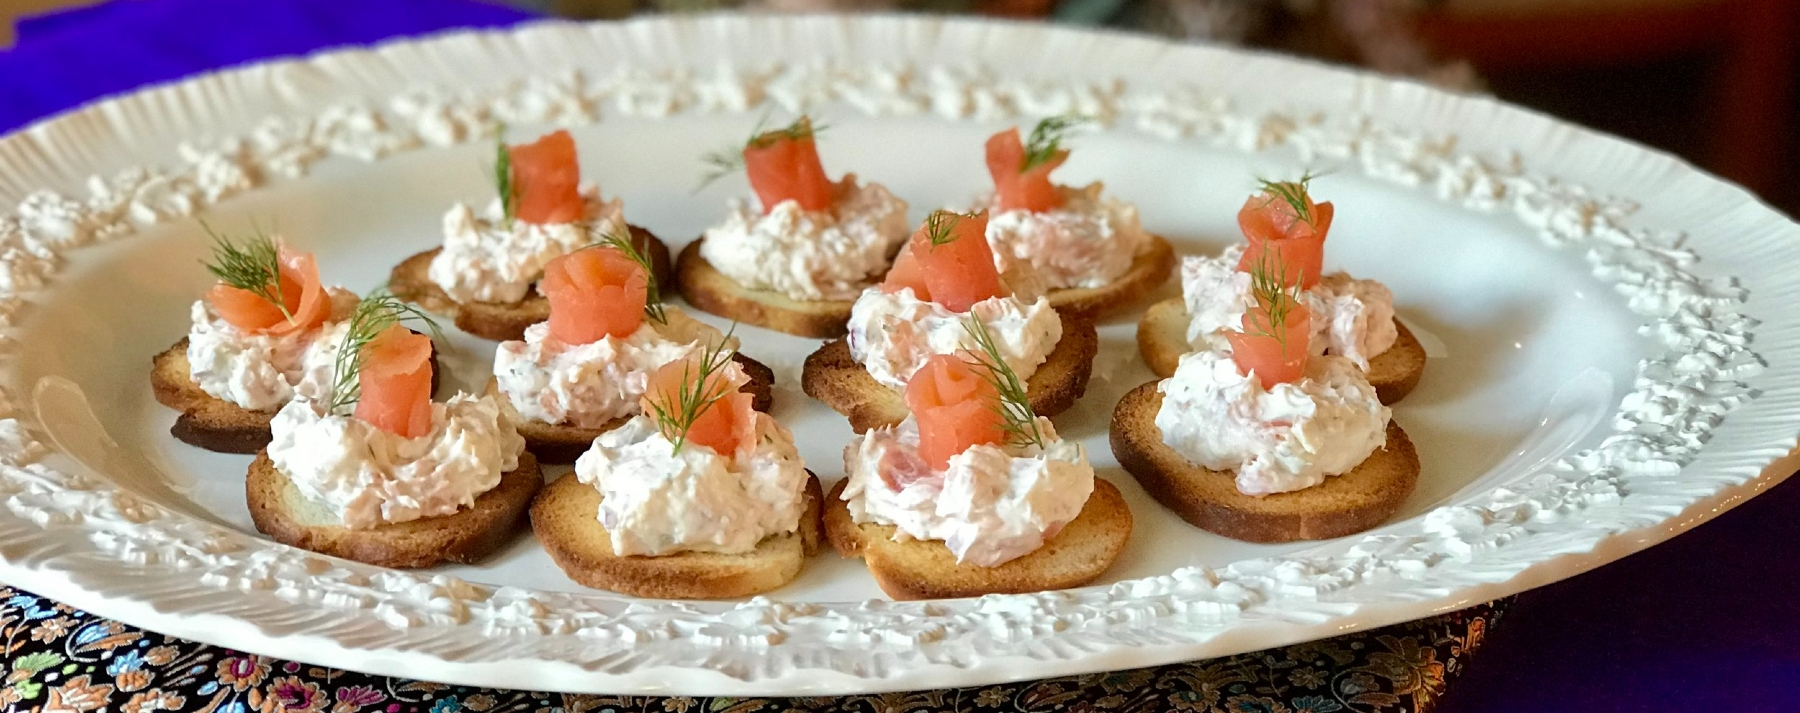 Image of Smoked Salmon Pate at Beechwood Inn for Wine-Thirty